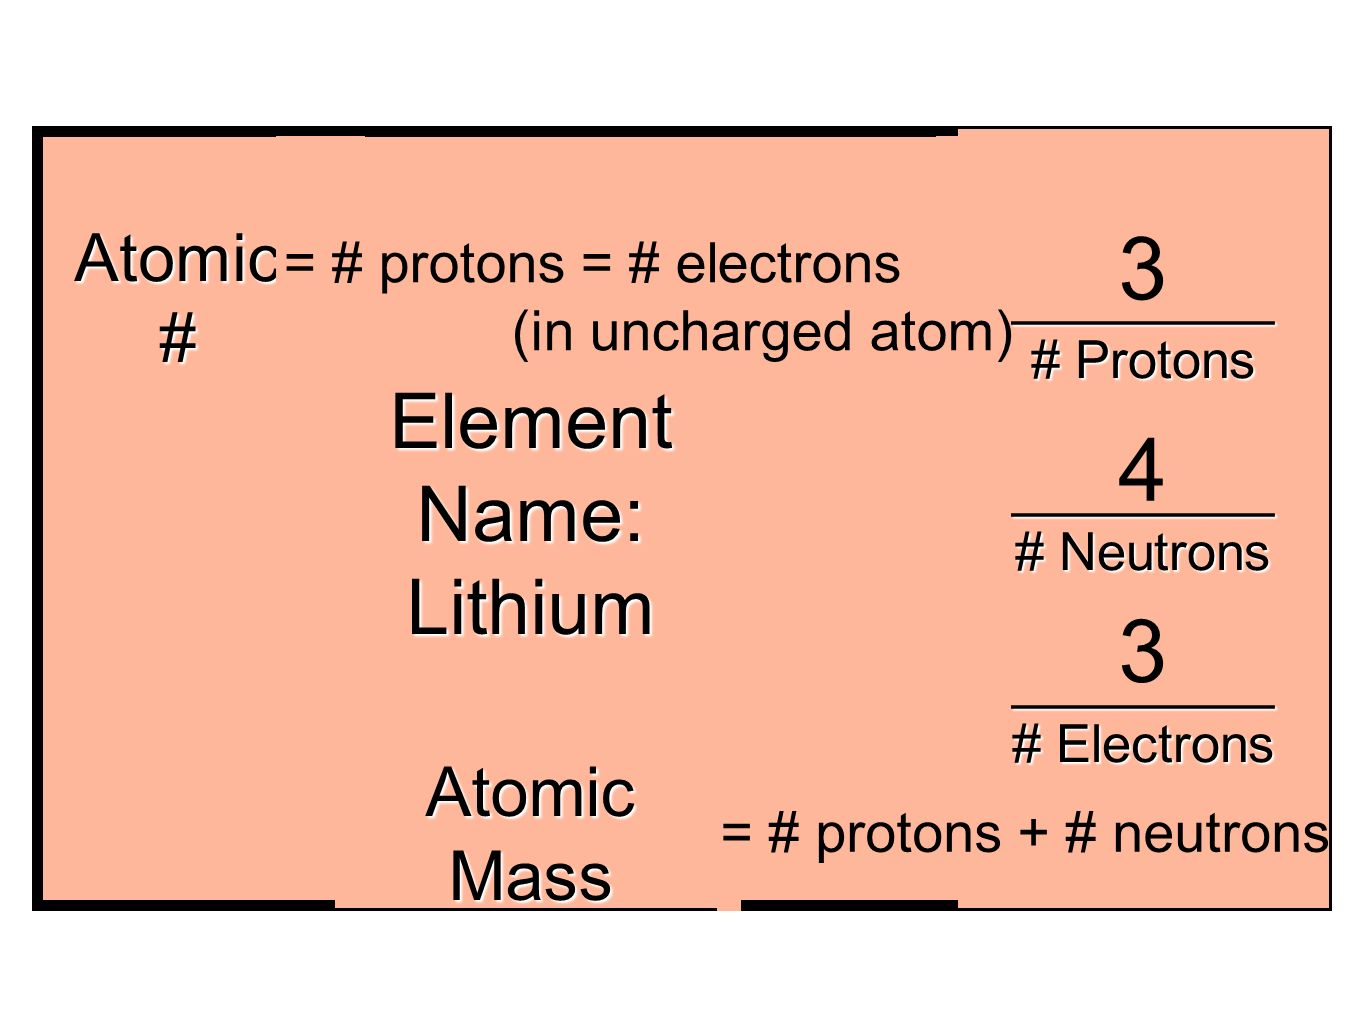 My element foldable for lithium as an example element symbol li 4 xe 54 131 element name lithium atomic atomic mass protons neutrons electrons protons electrons in uncharged atom urtaz Choice Image